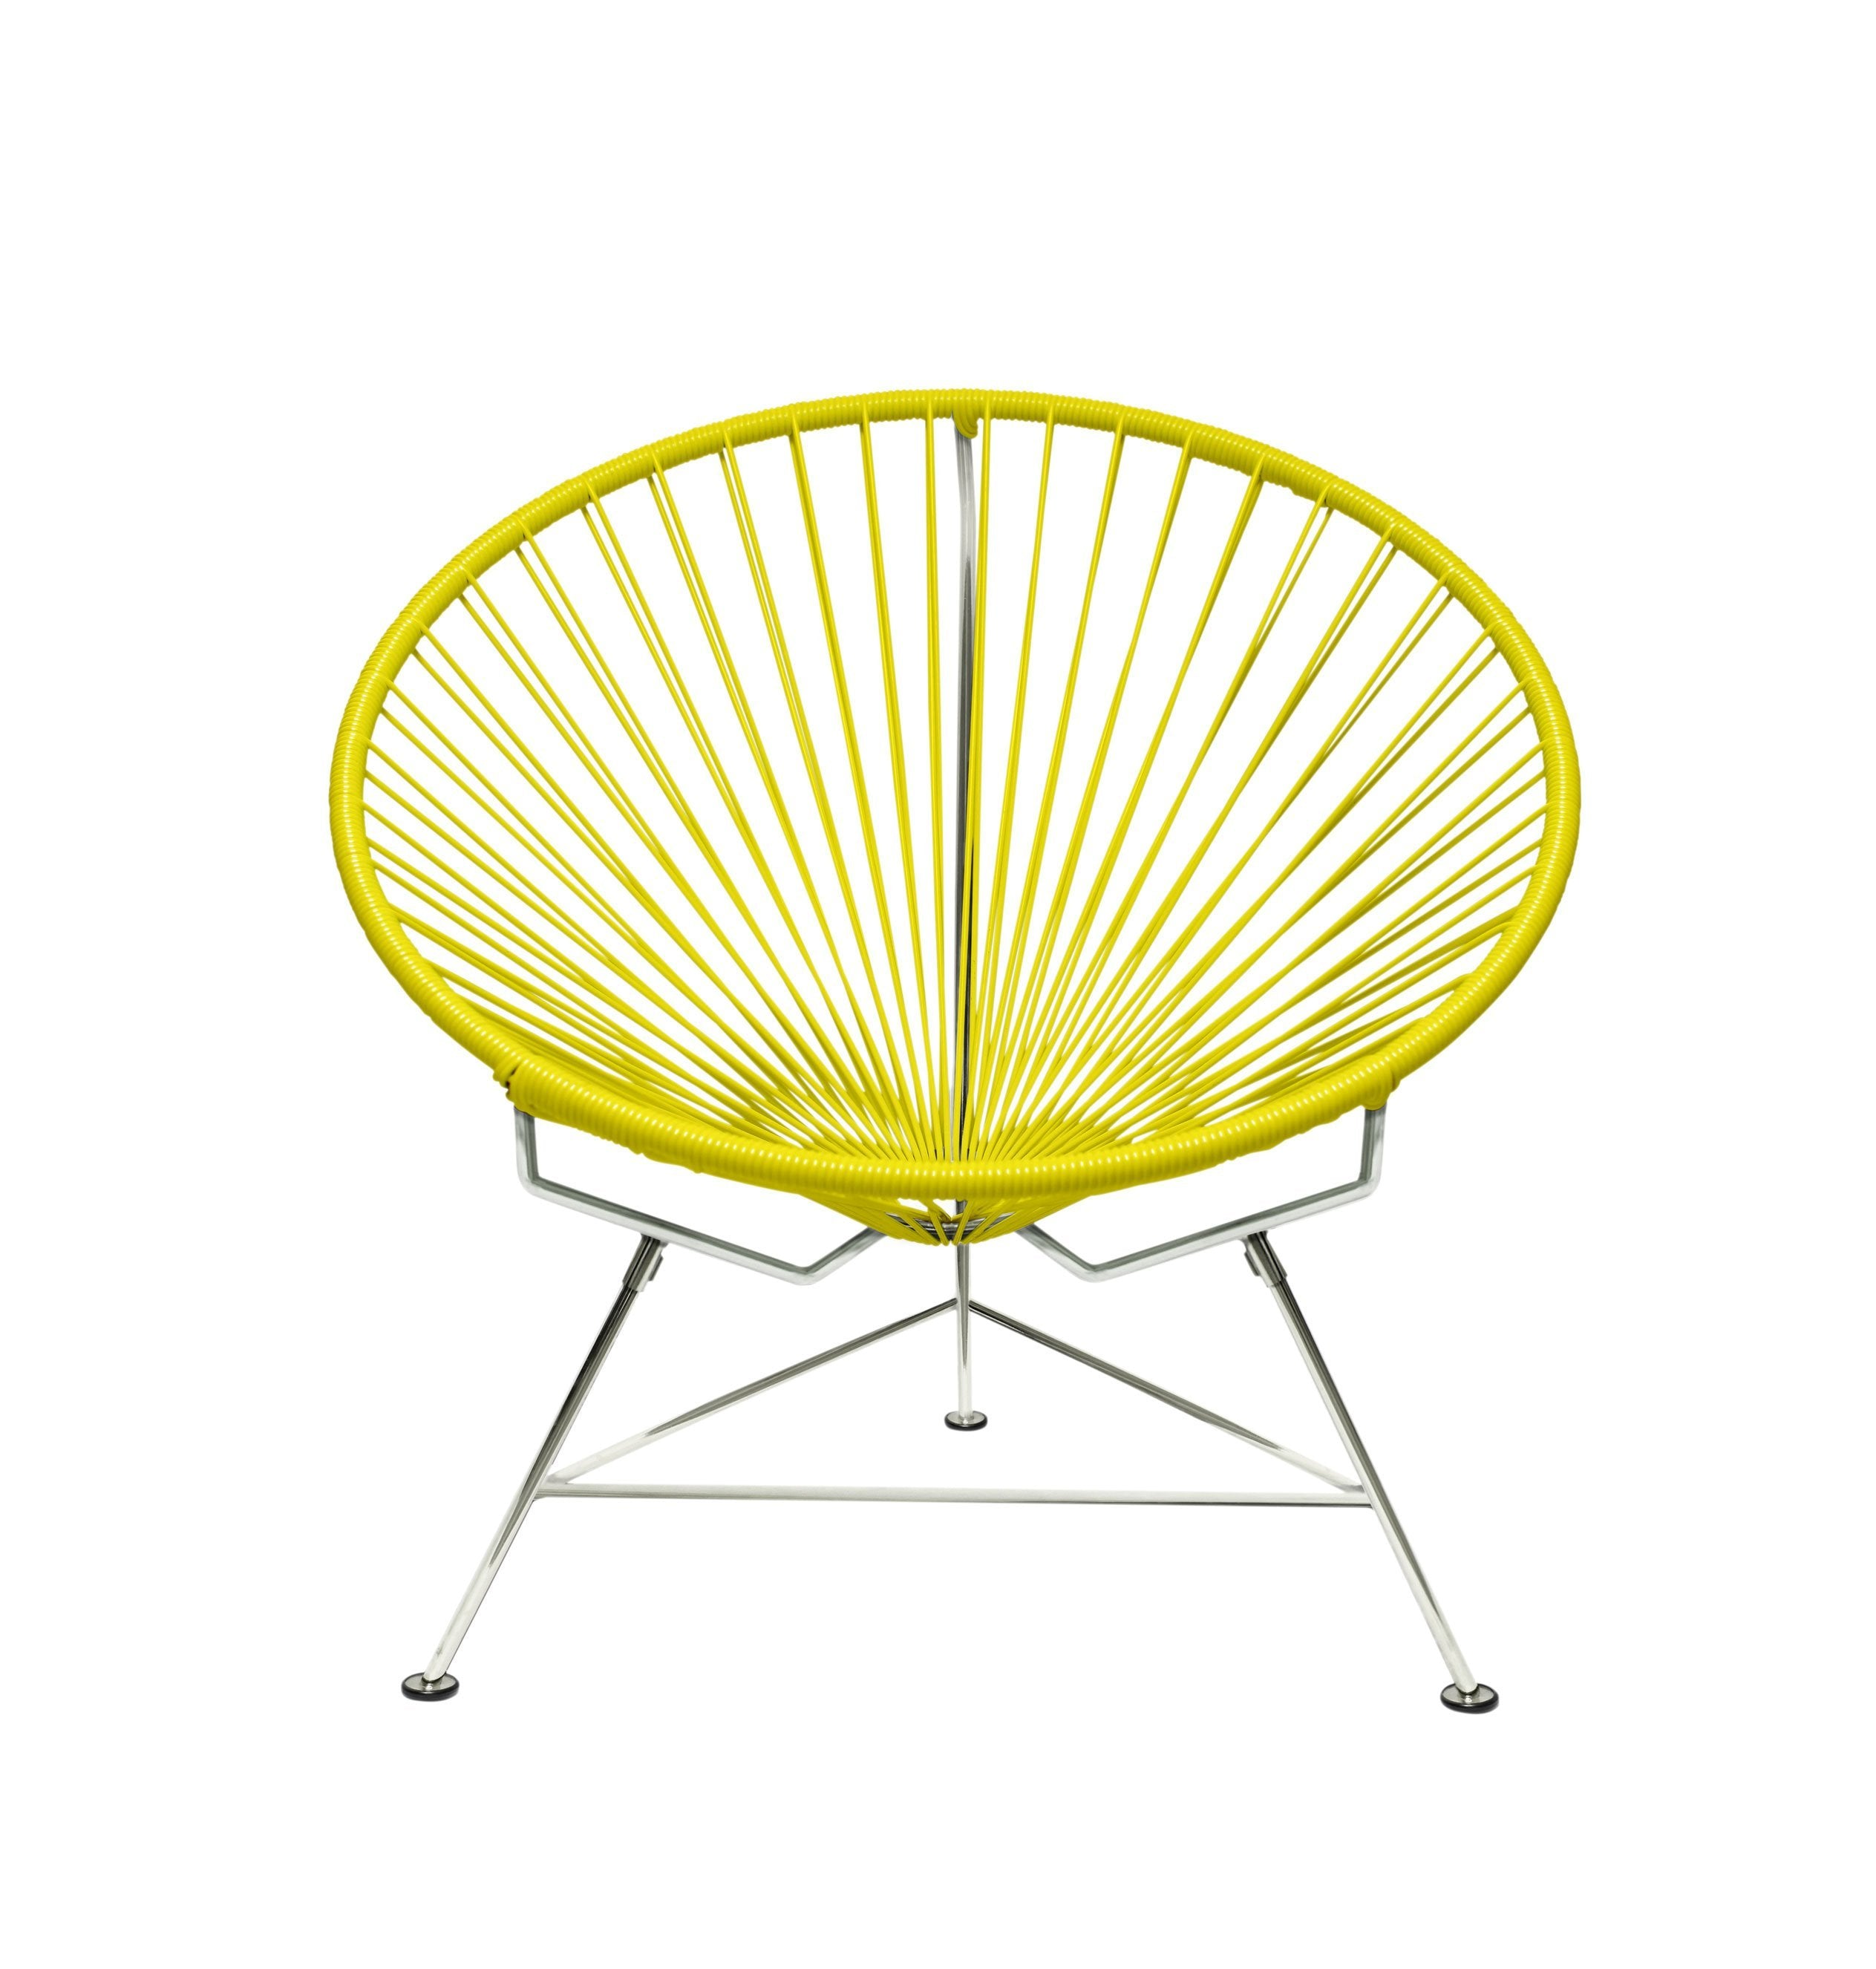 Buy Innit Chair on Chrome Frame at Lifeix Design for only $430 00